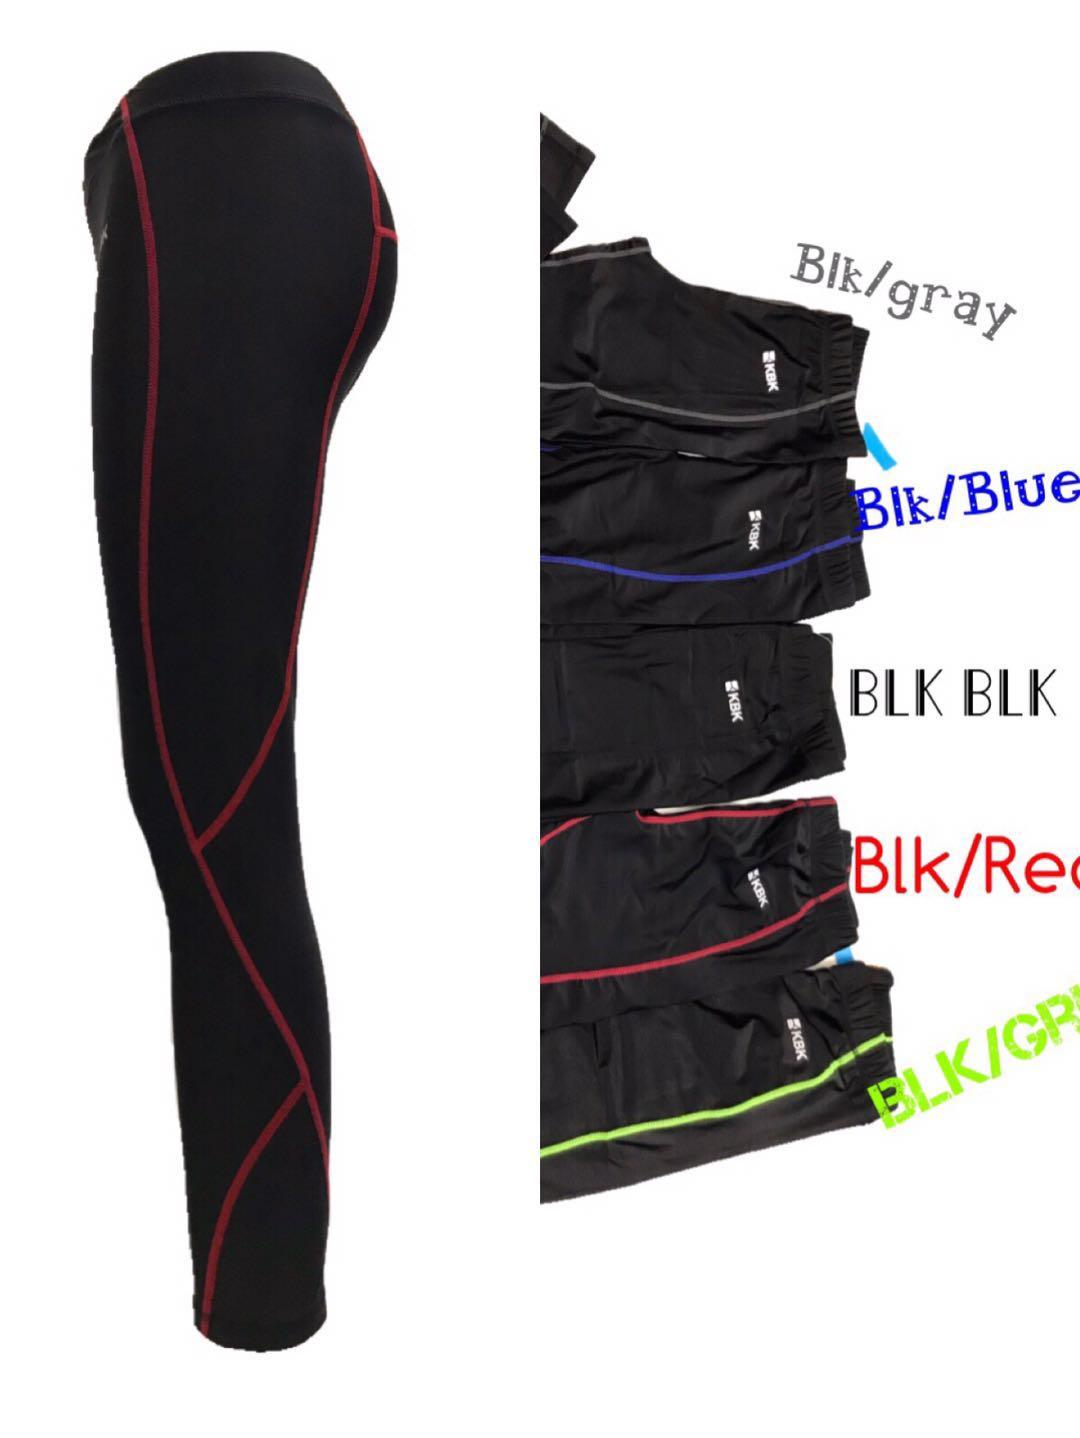 4db7db53 Compression pants#911-Cool Dry Sports Tights Pants Baselayer Runing  Leggings for women Men